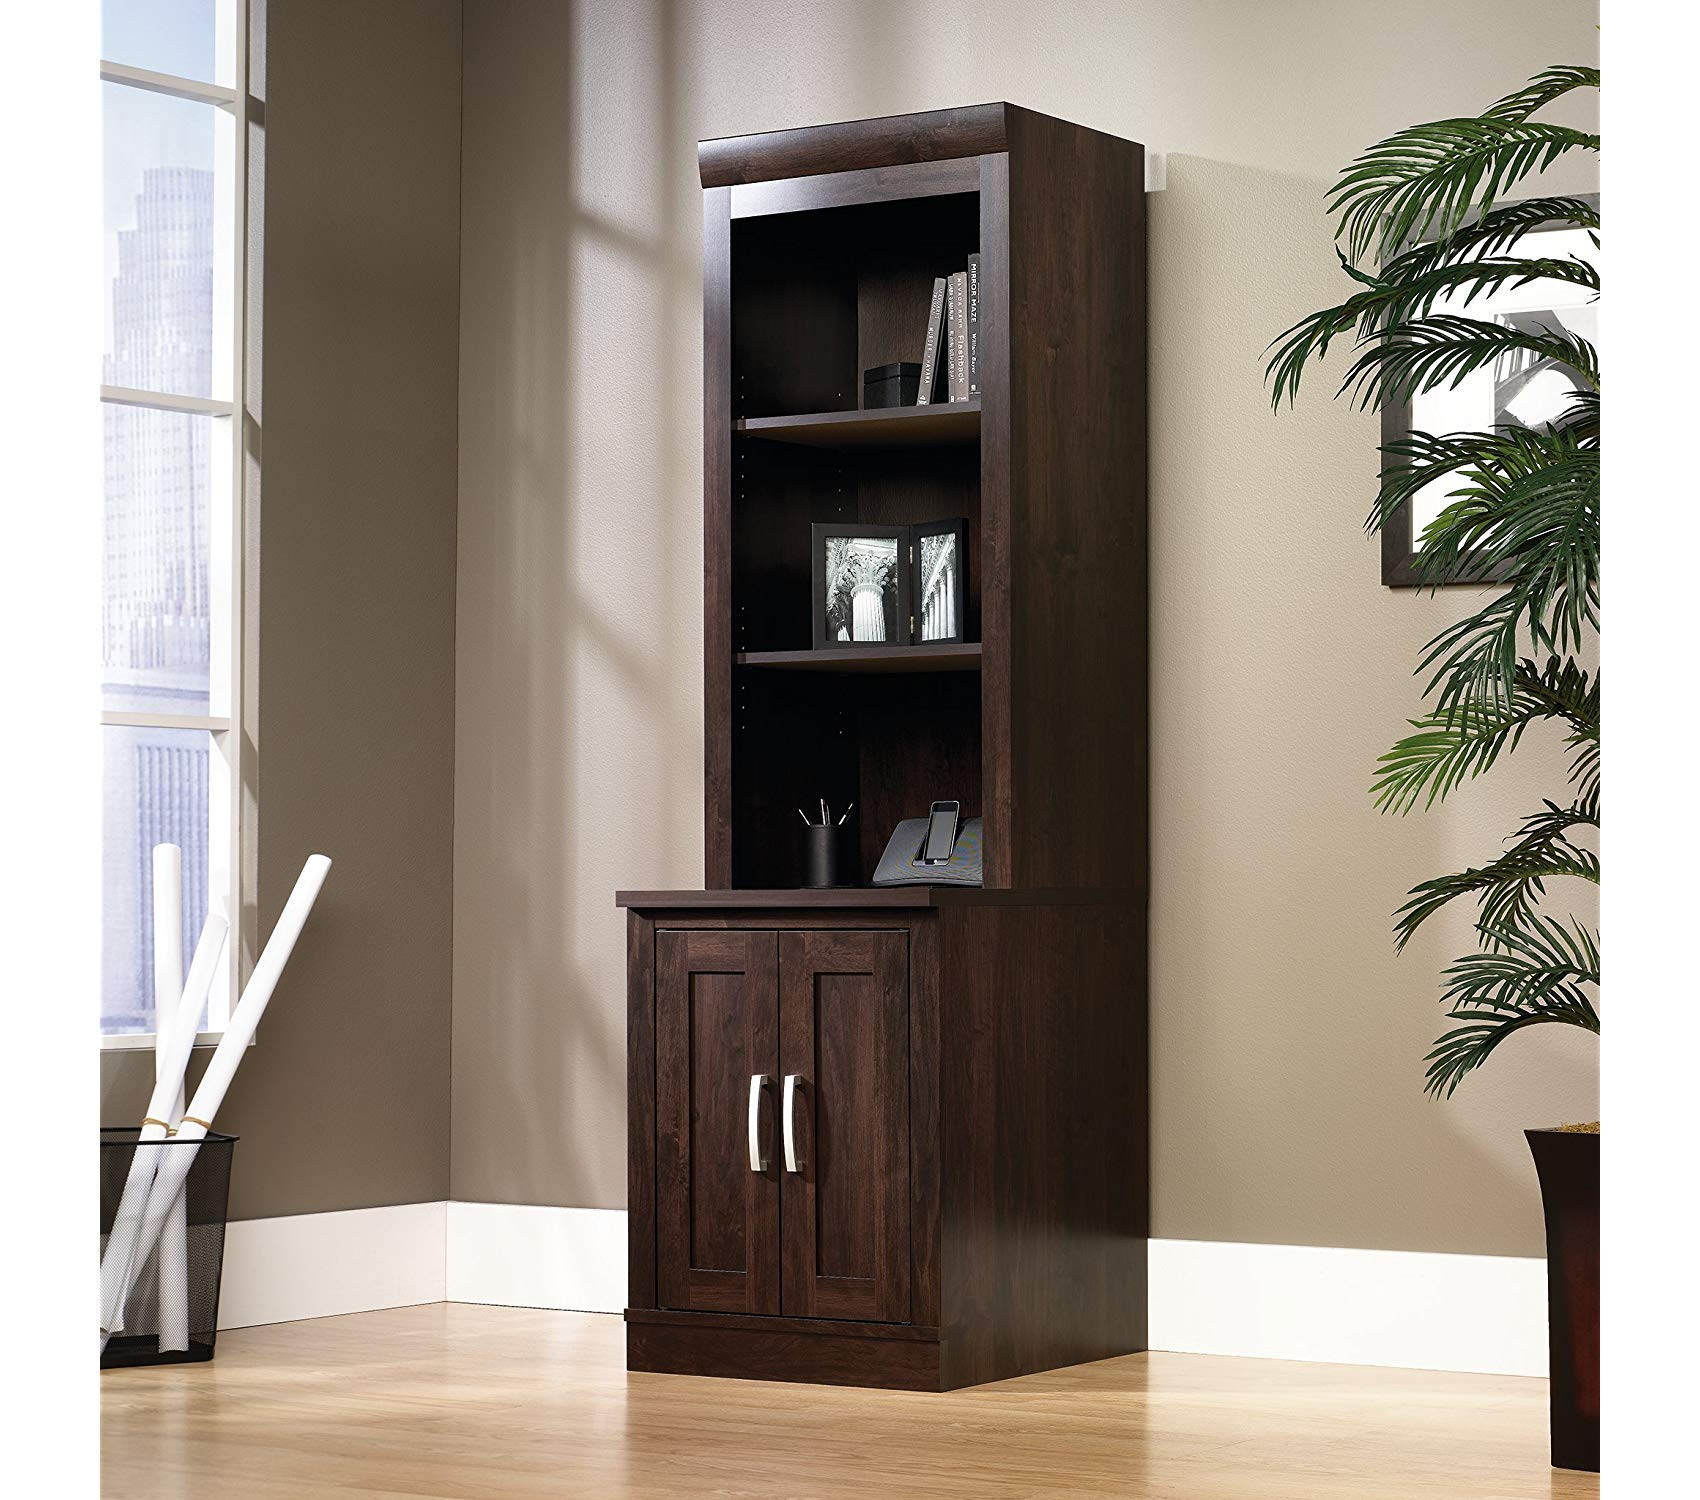 Sаudеr Deluxe Premium Collection Office Port Hutch L: 23.39'' x W: 15.63'' x H: 47.17'' Dark Alder Finish Decor Comfy Living Furniture by Sаudеr (Image #3)